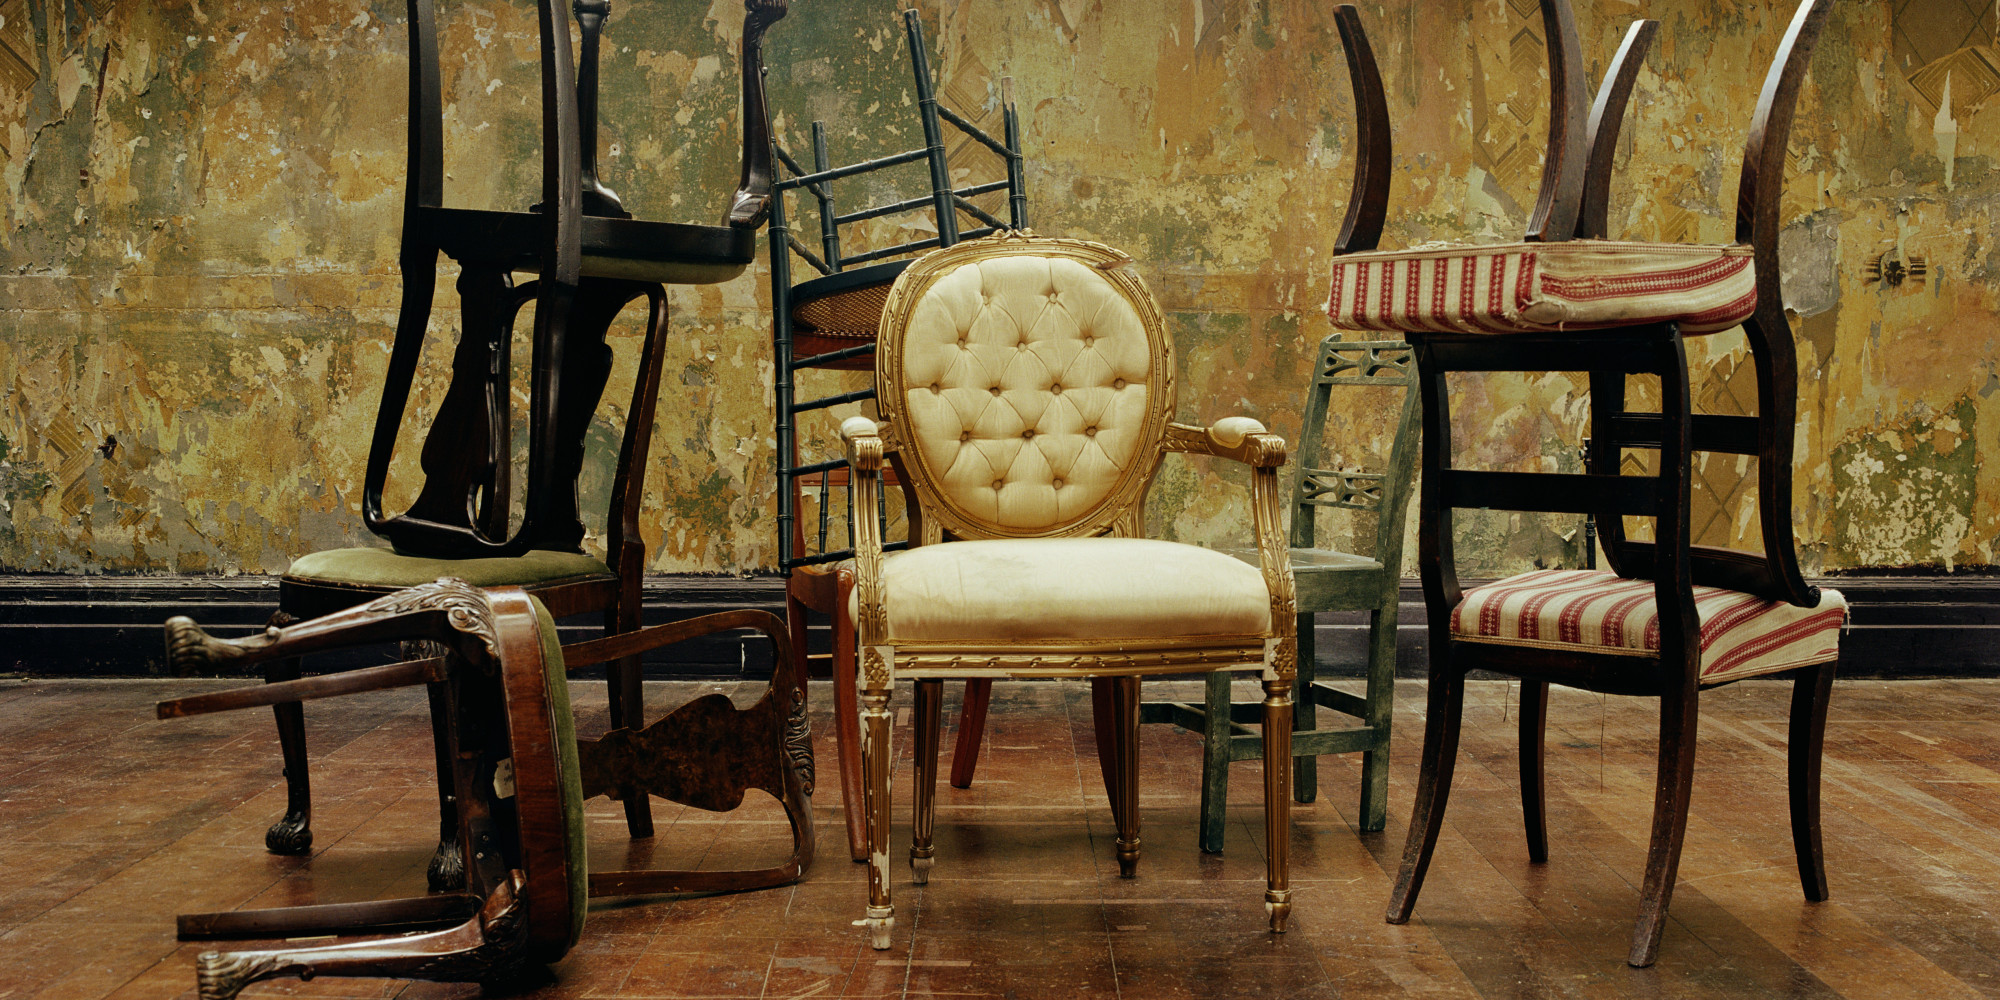 10 Best Websites For Vintage Furniture That You Can Browse From Your Living  Room | HuffPost